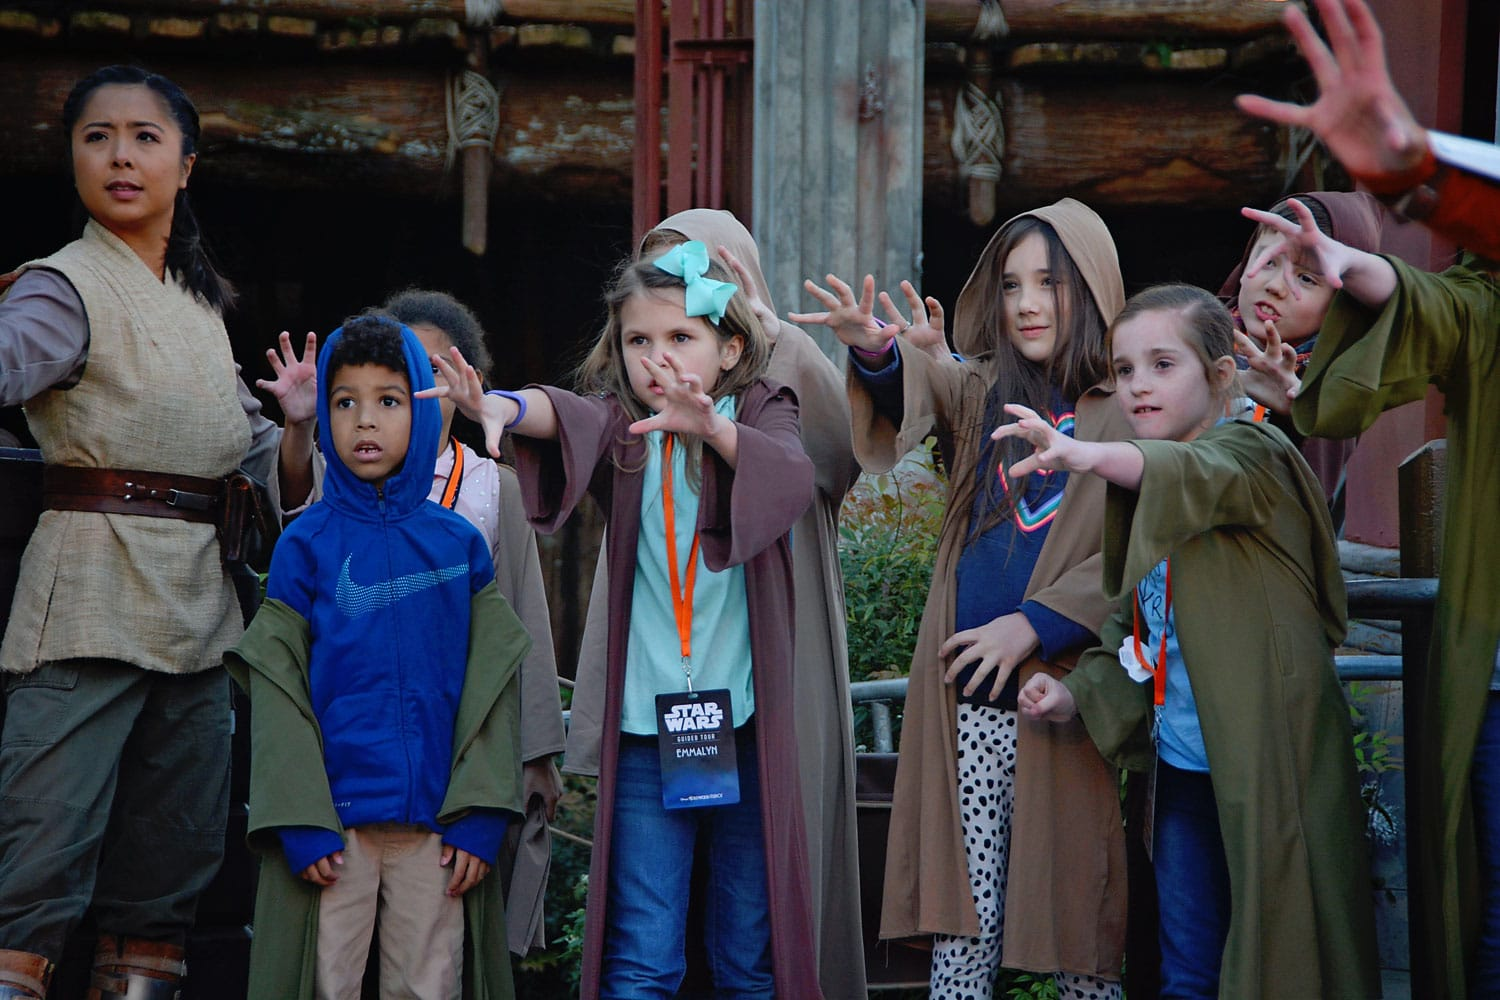 Kids participate in Jedi Training on the Star Wars Guided Tour at Disney's Hollywood Studios